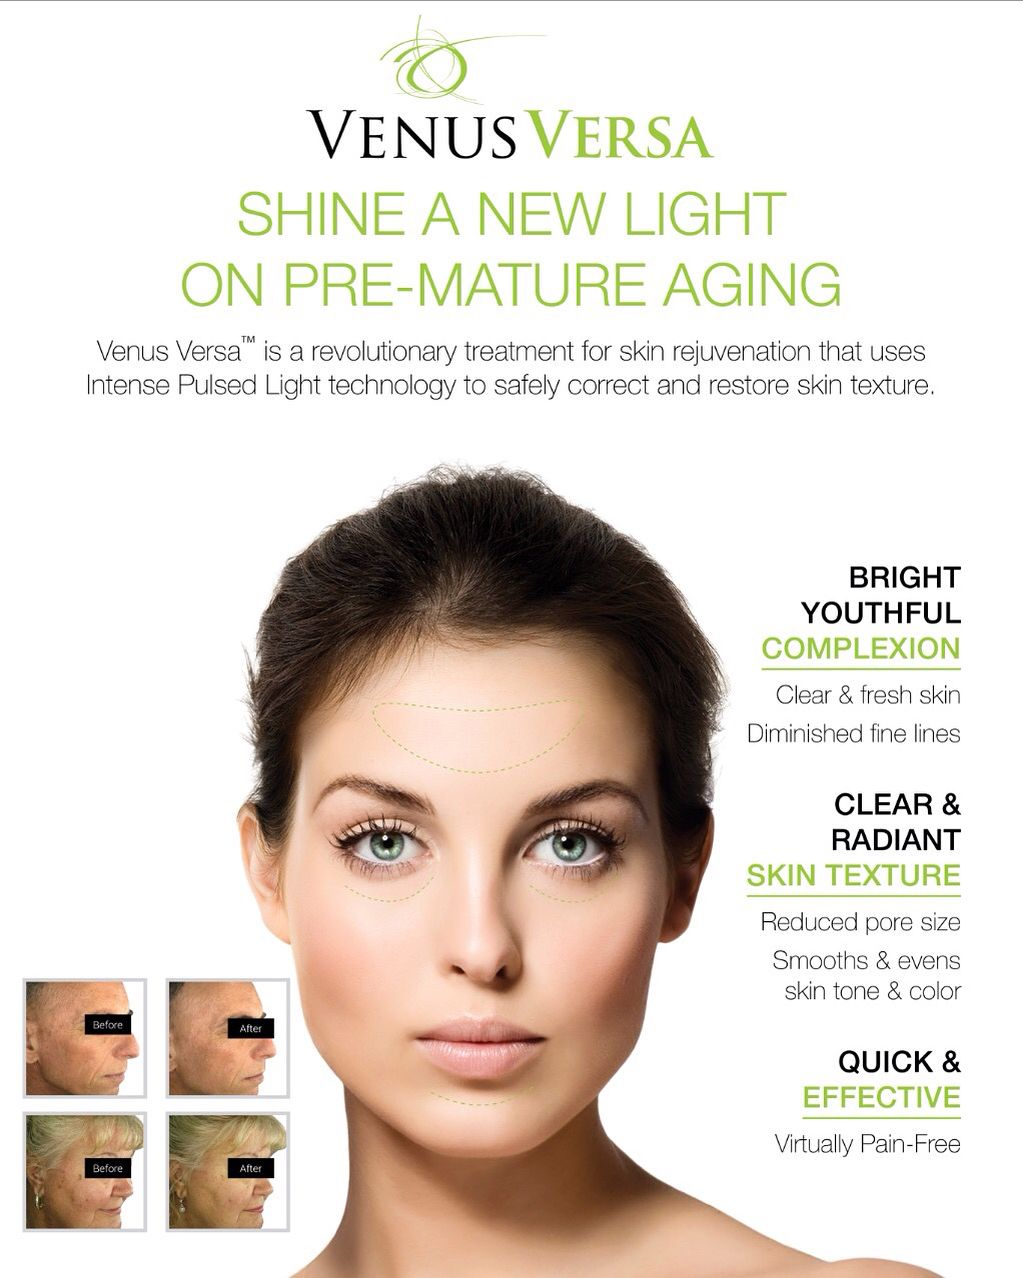 SHINE A NEW LIGHT ON PRE-MATURE AGING